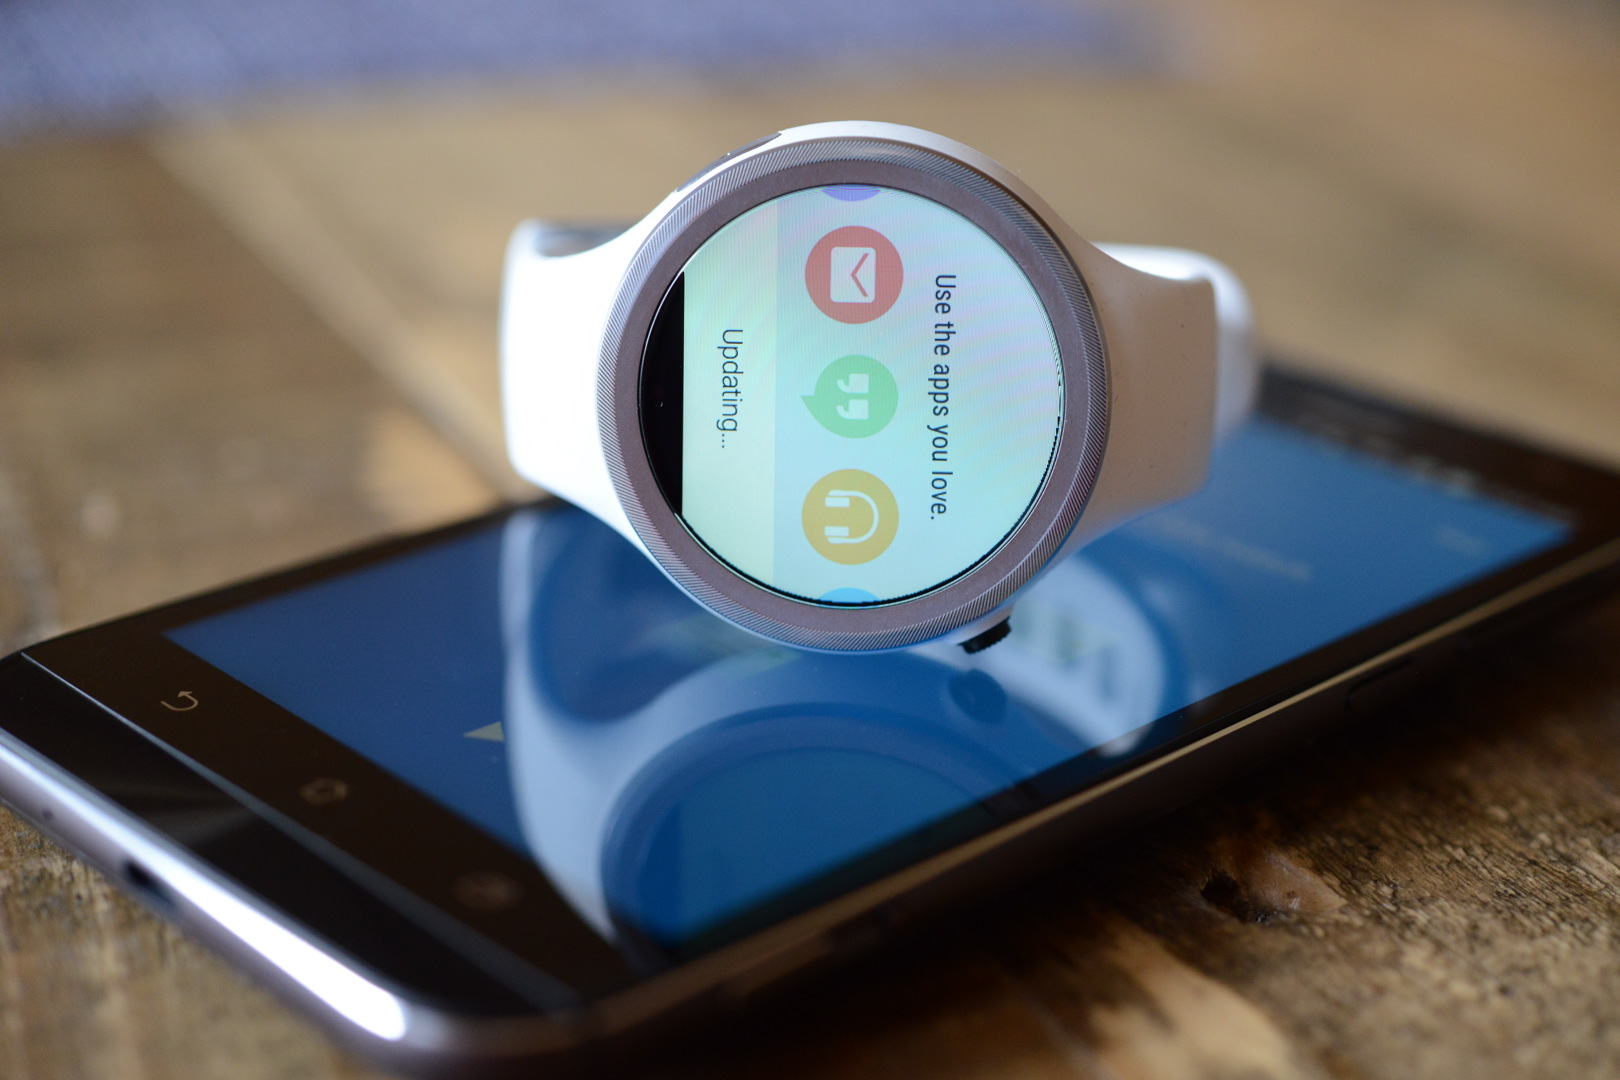 Moto 360 Sport Review: A Smartwatch Fitness Tracking Hybrid